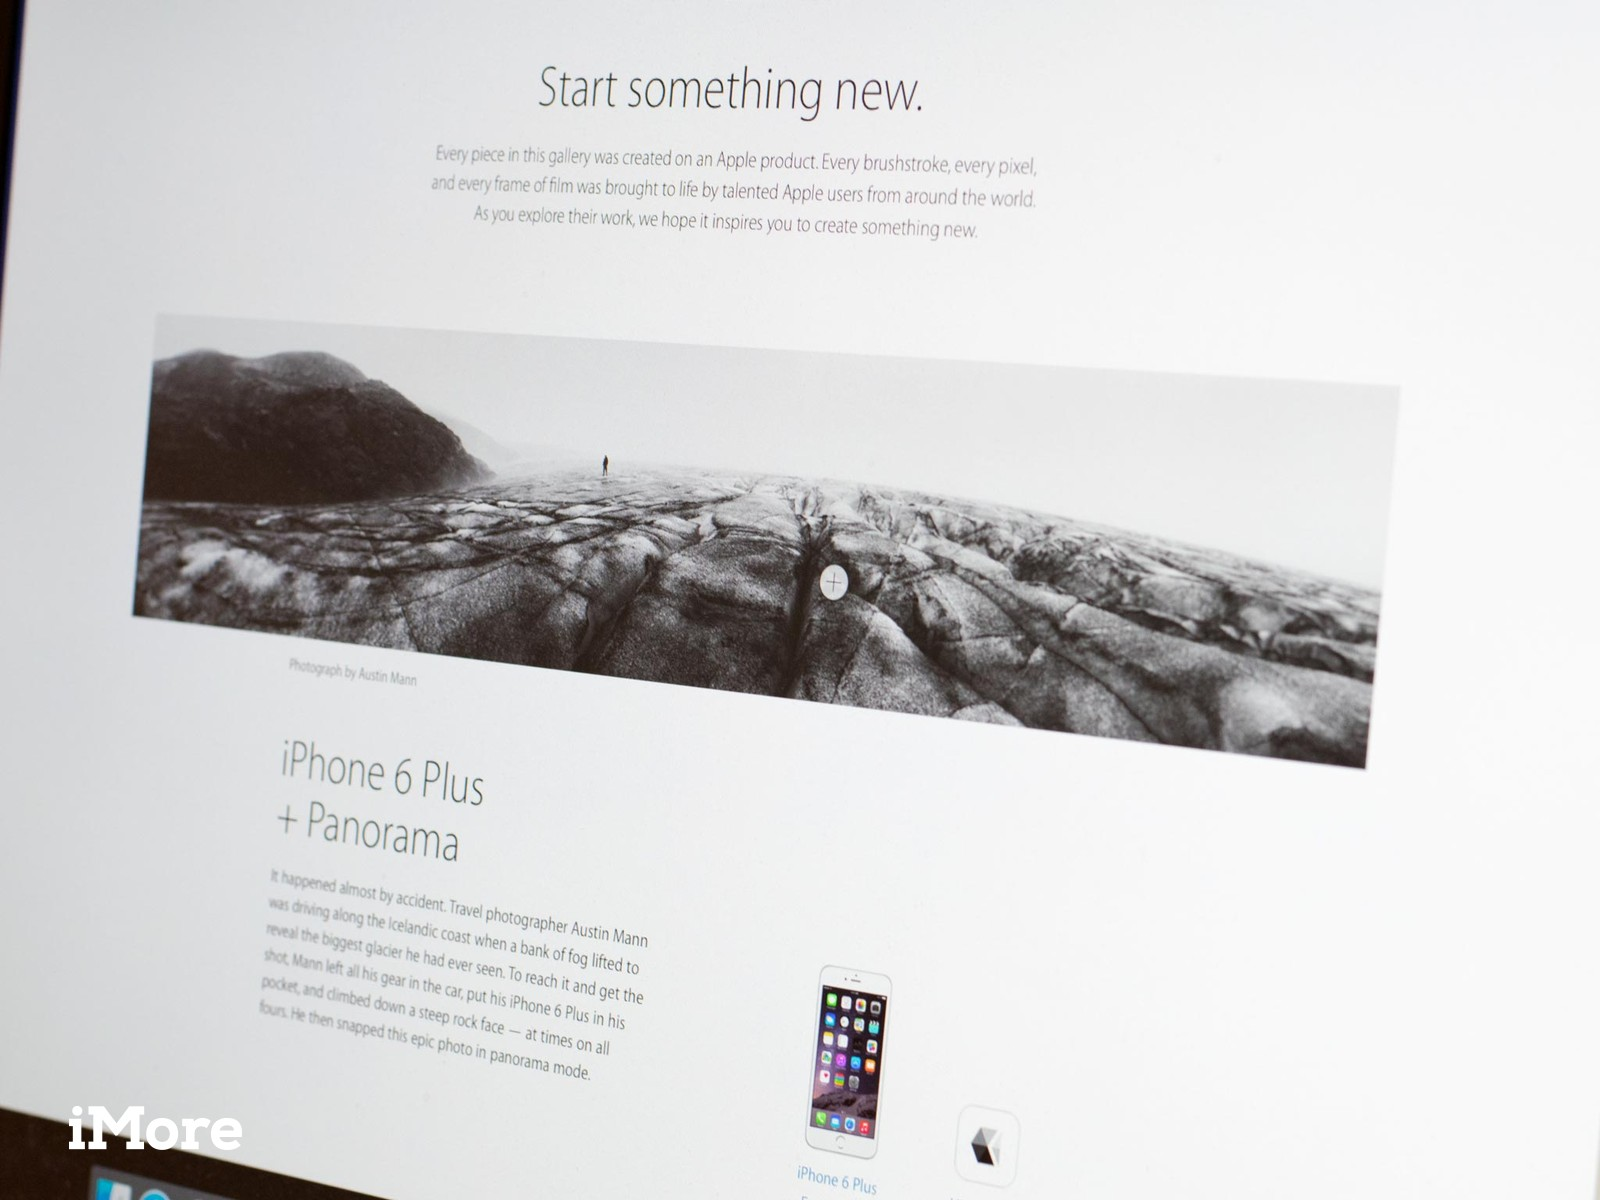 Apple's 'Start something new' website hopes to inspire you to create with Apple products